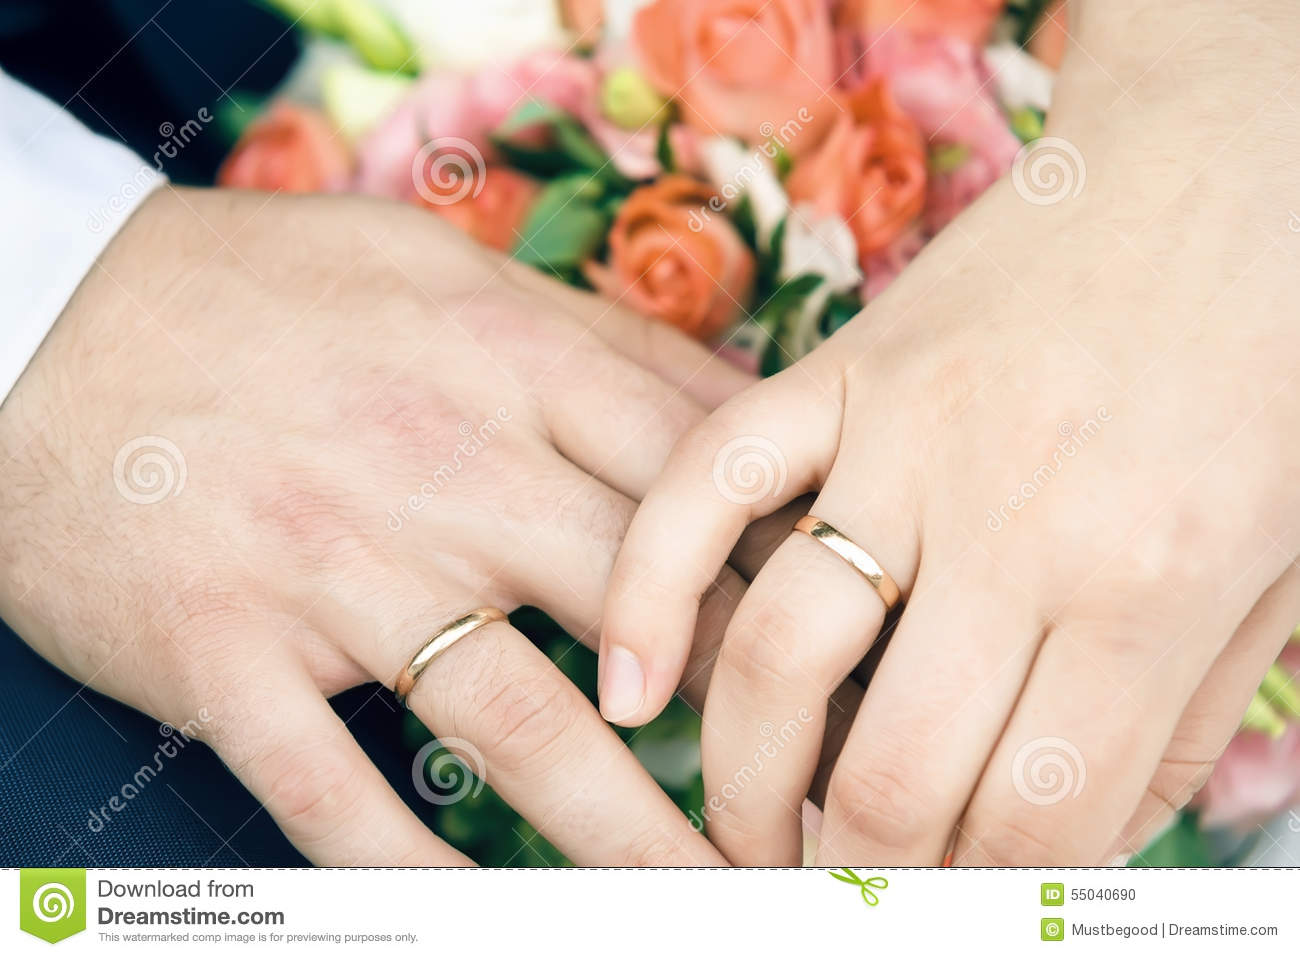 Hands Of Happy Newly-married Couple With Gold Wedding Rings And ...